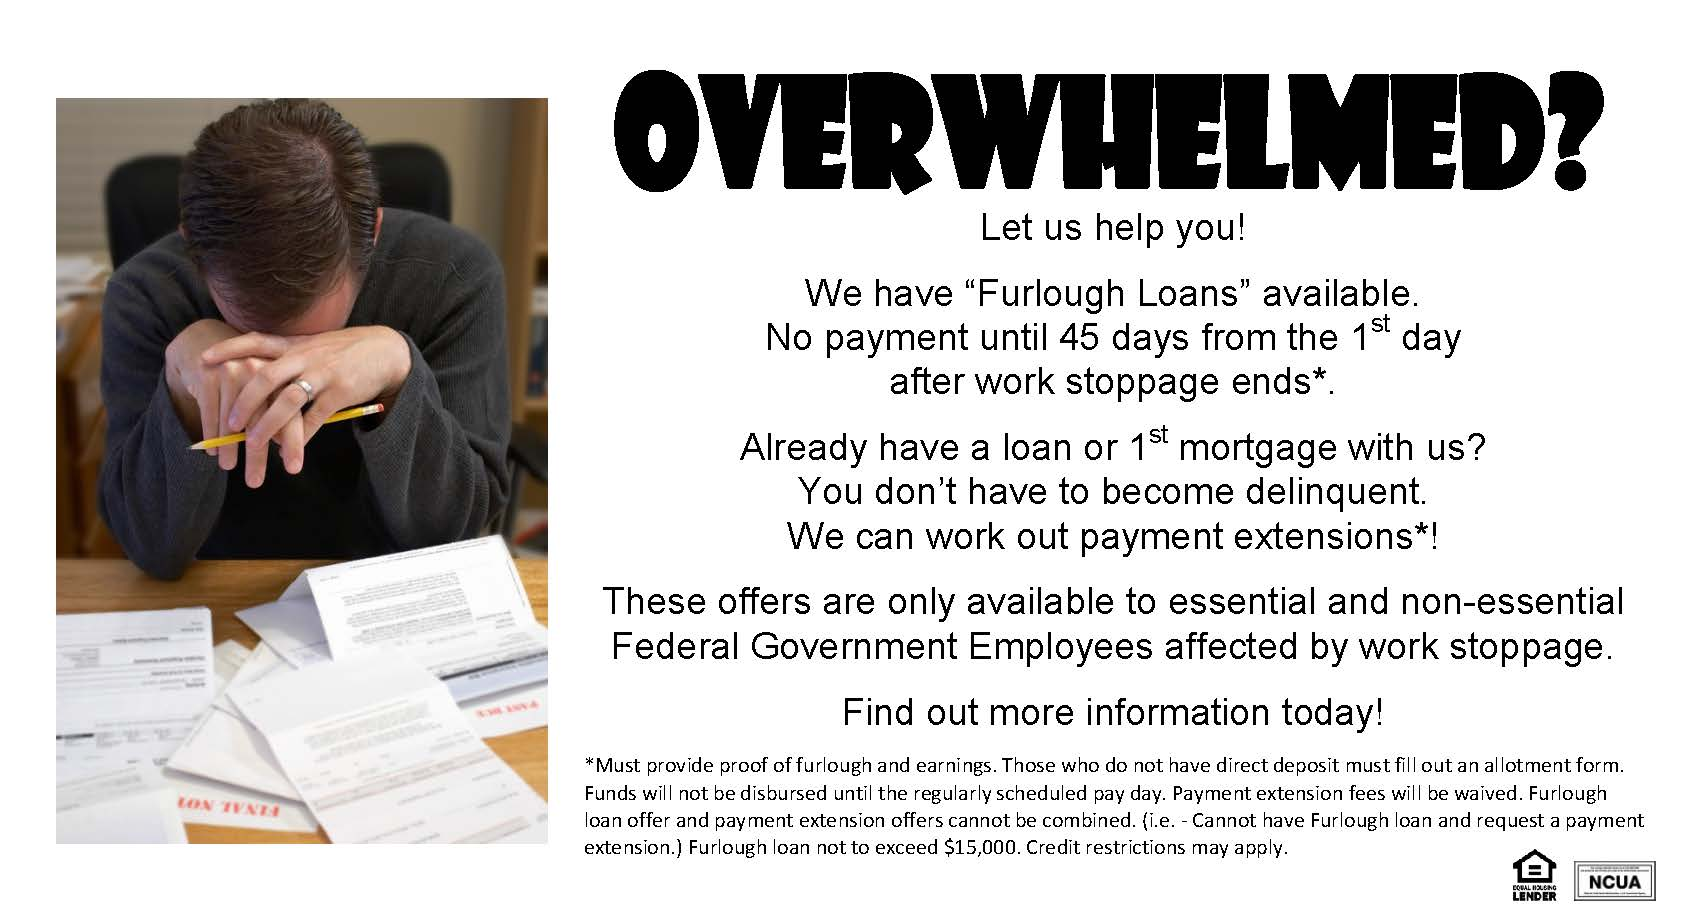 Promotional ad for furlough loans for the government shutdown. Contact the credit union for details.